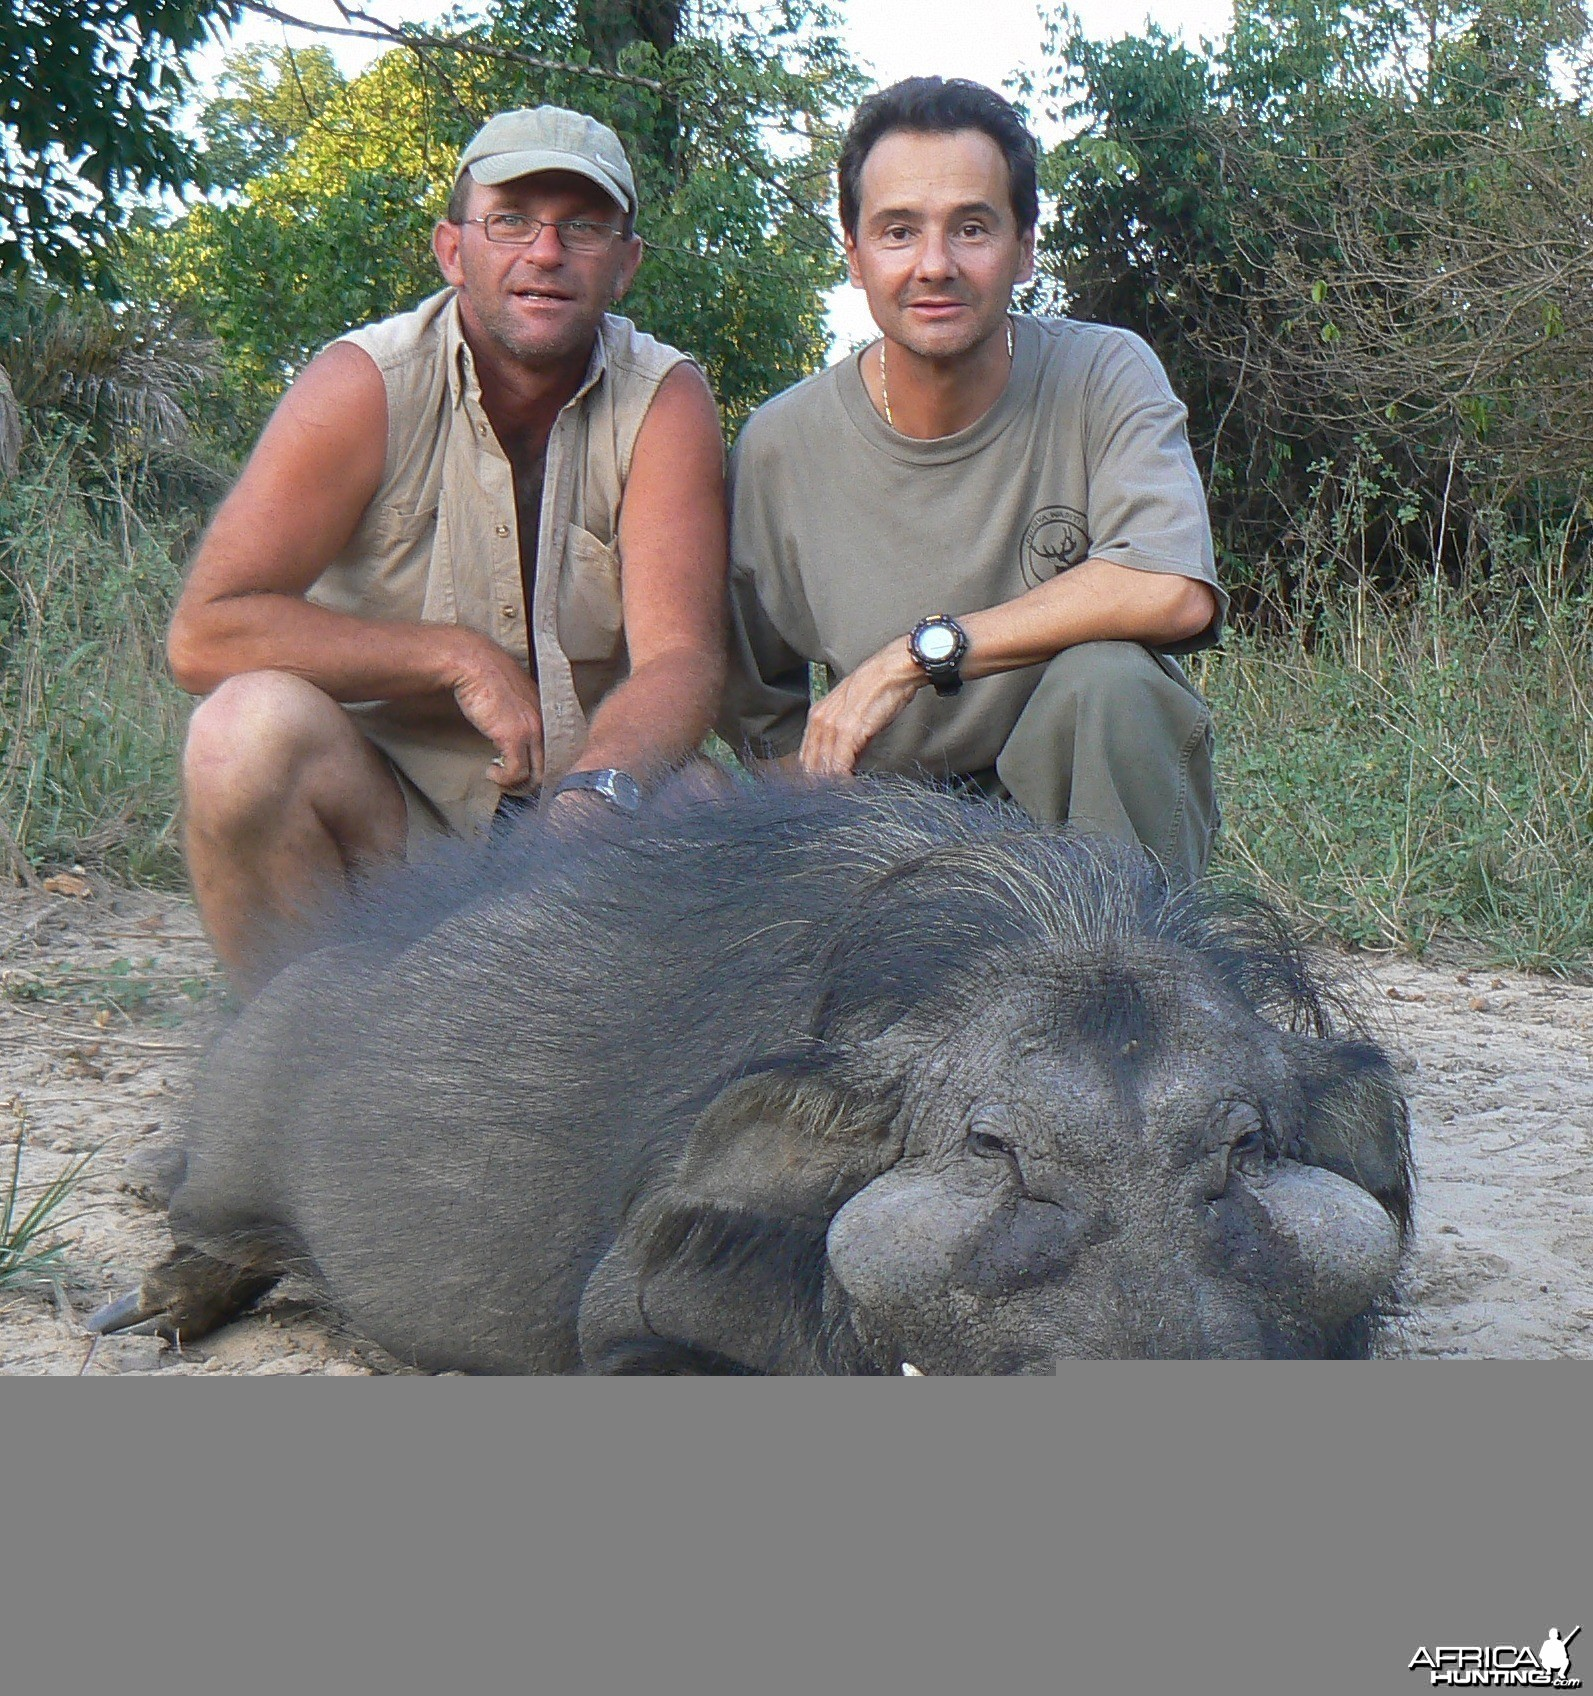 Giant Forest Hog hunted in Central Africa with Club Faune